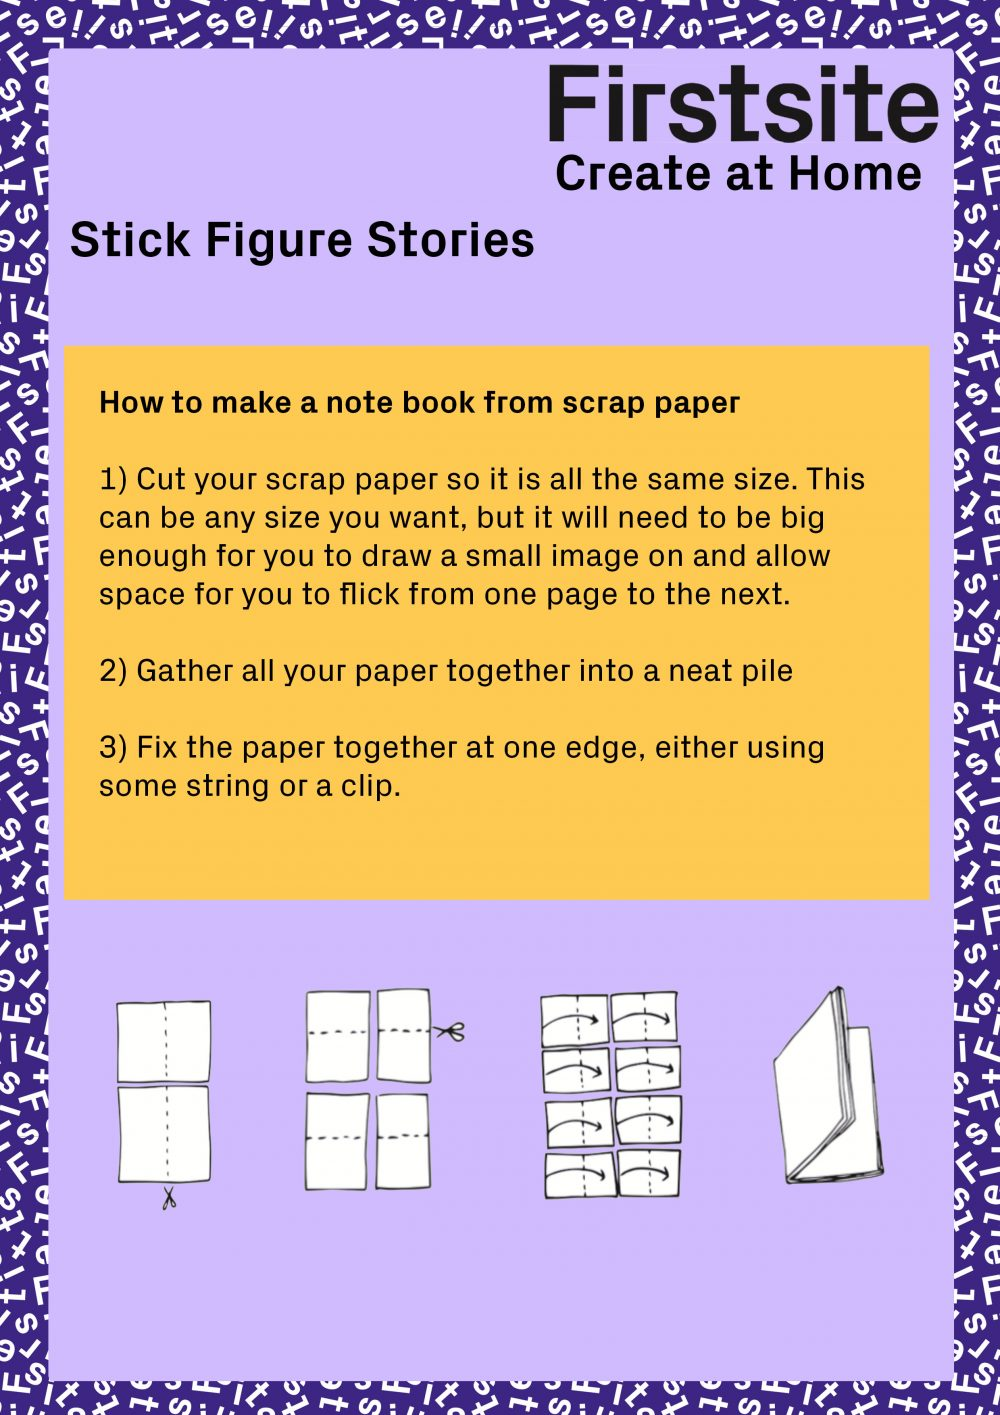 Written instructions for how to make a stick figure story page 2 of 3